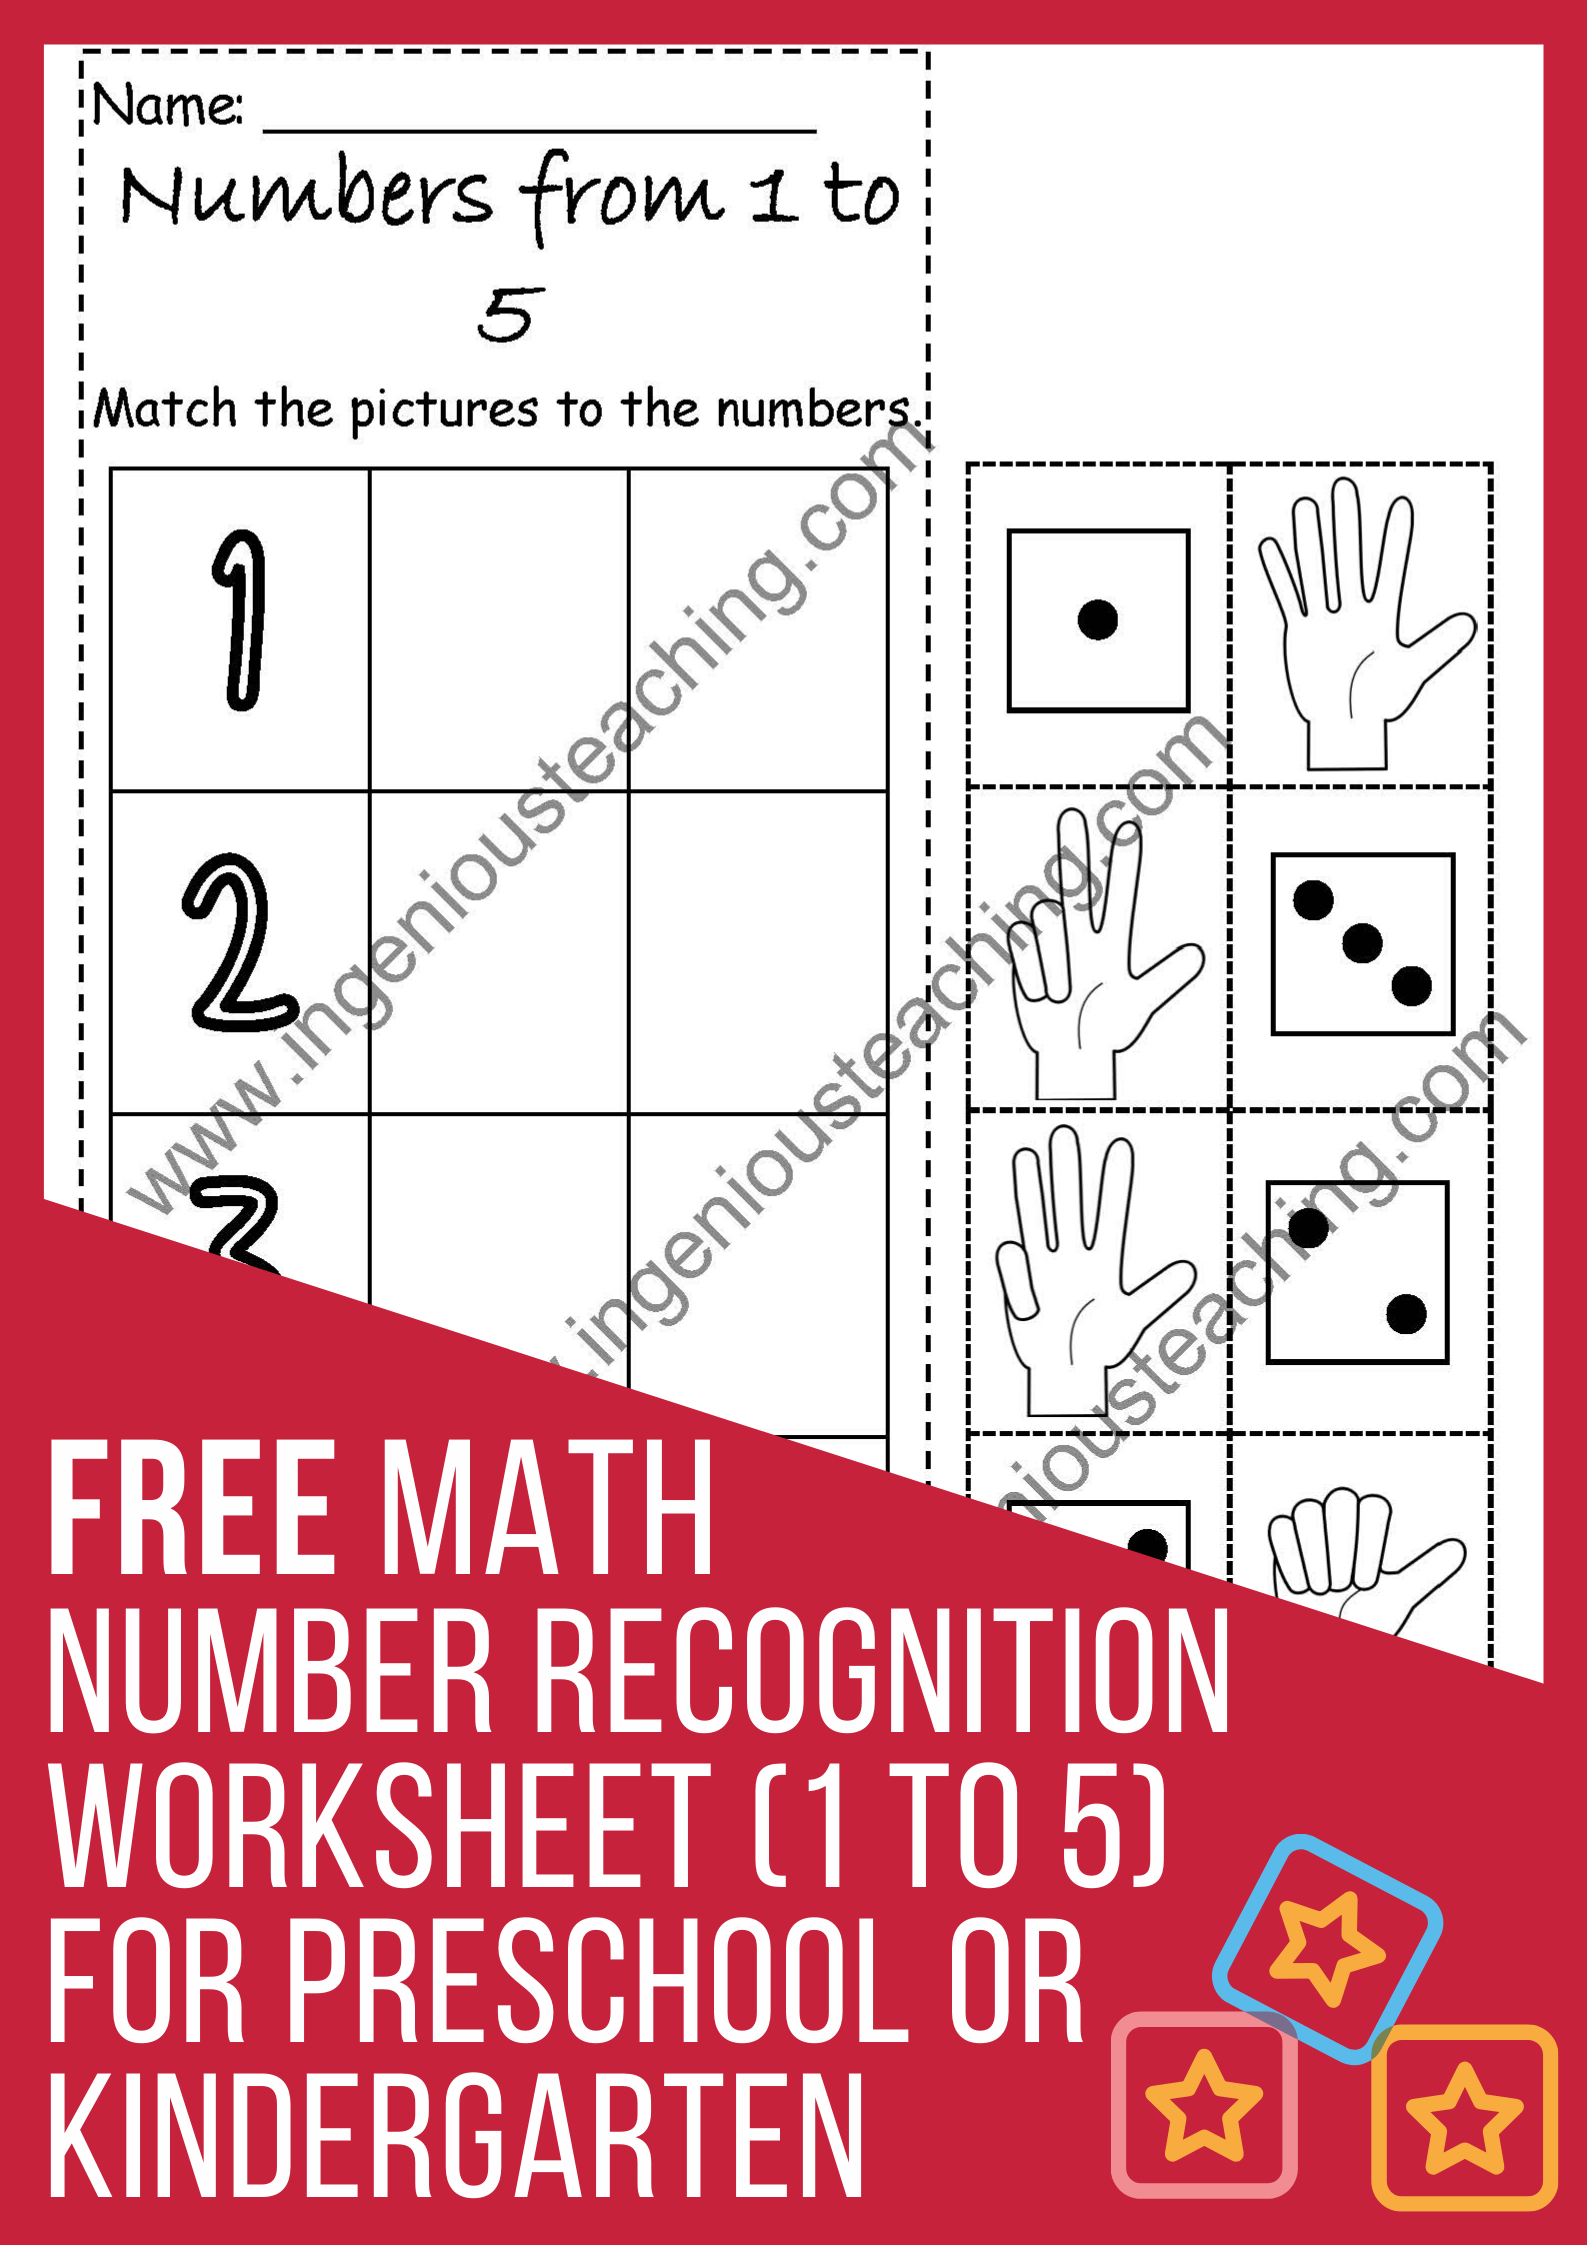 Free Math Number Recognition Worksheet 1 To 5 For Preschool Or Kindergarten Number Recognition Worksheets Free Math Math Numbers